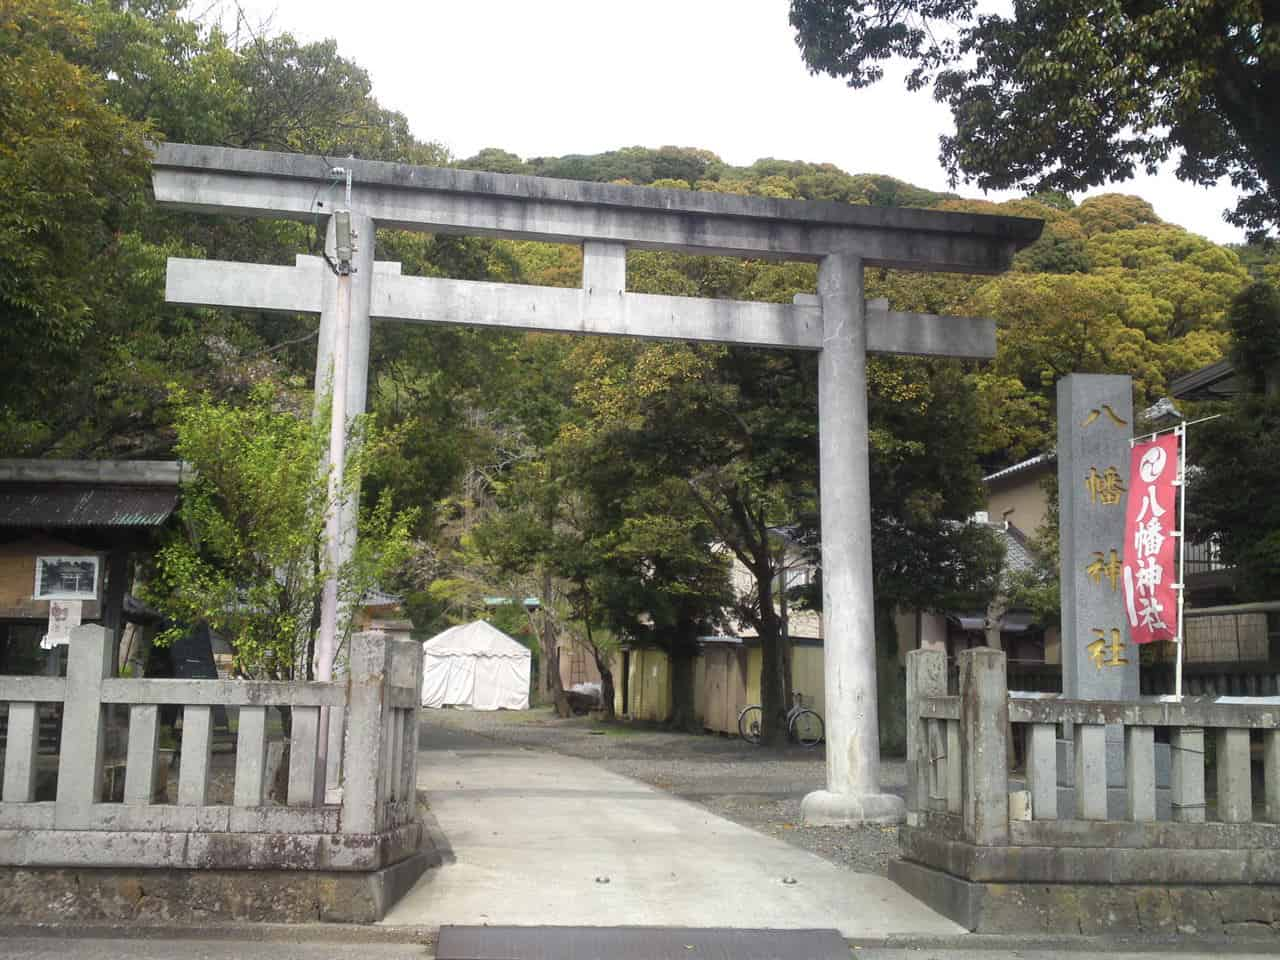 There is a shinto shrine entrance